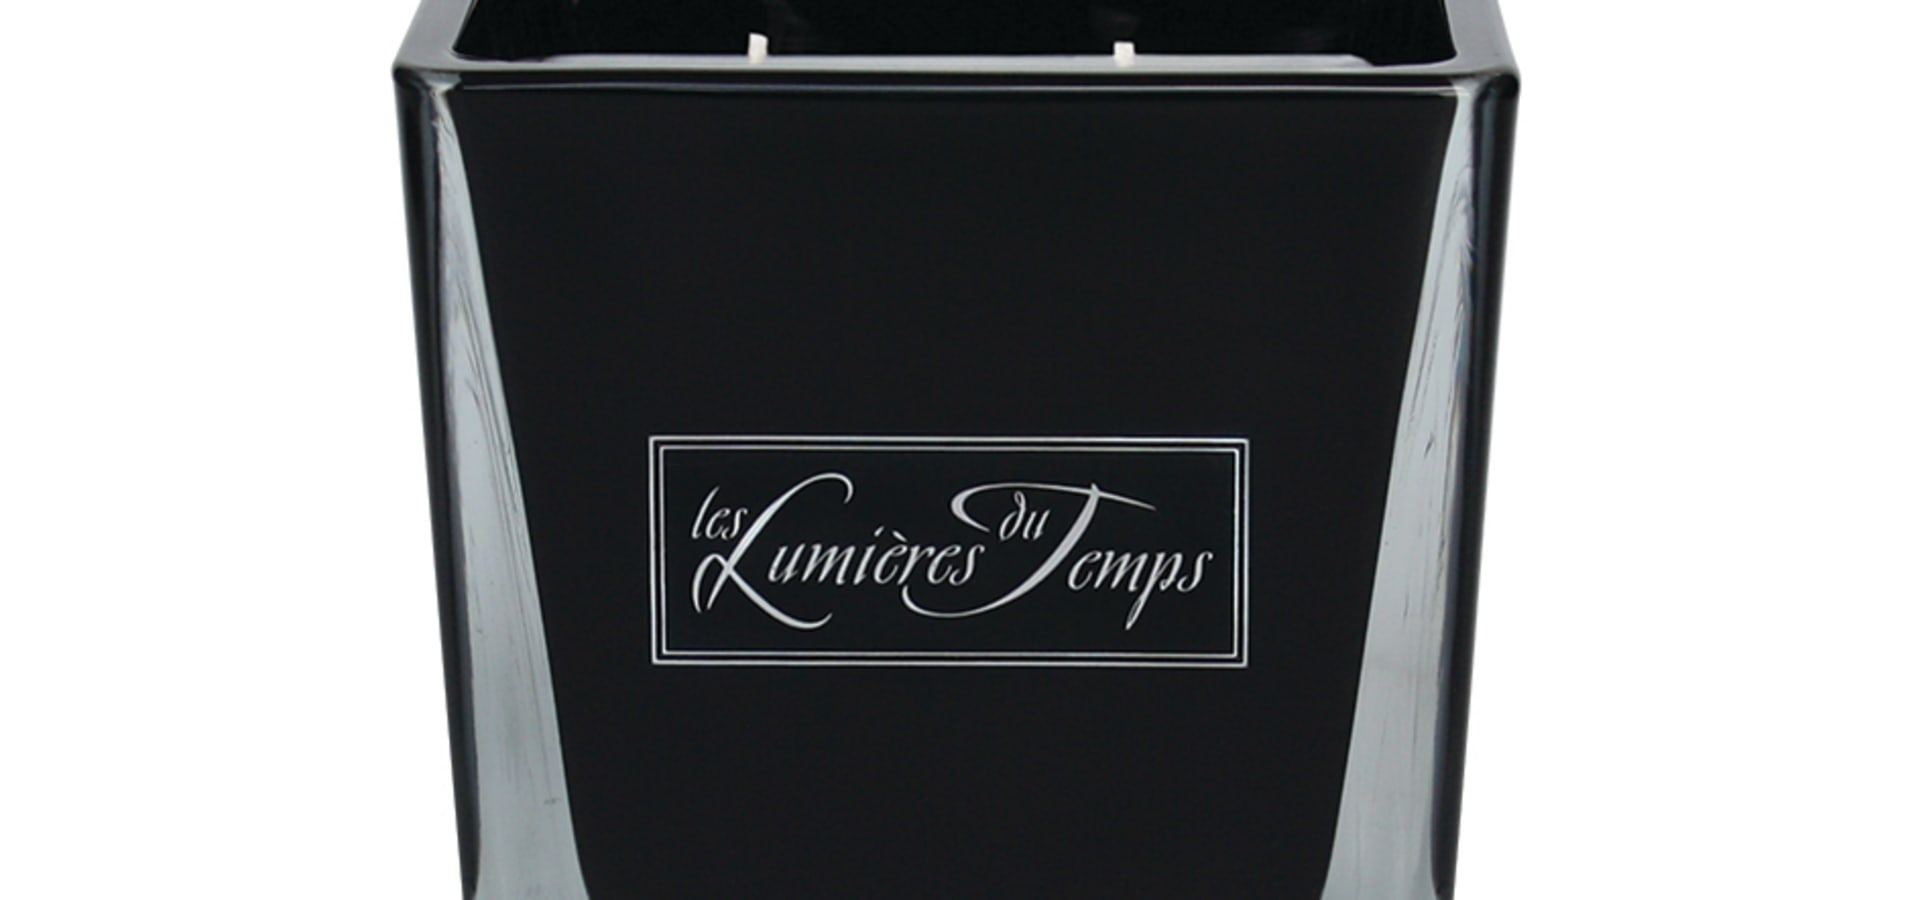 les lumi res du temps d corateurs d 39 int rieur plesnois sur homify. Black Bedroom Furniture Sets. Home Design Ideas